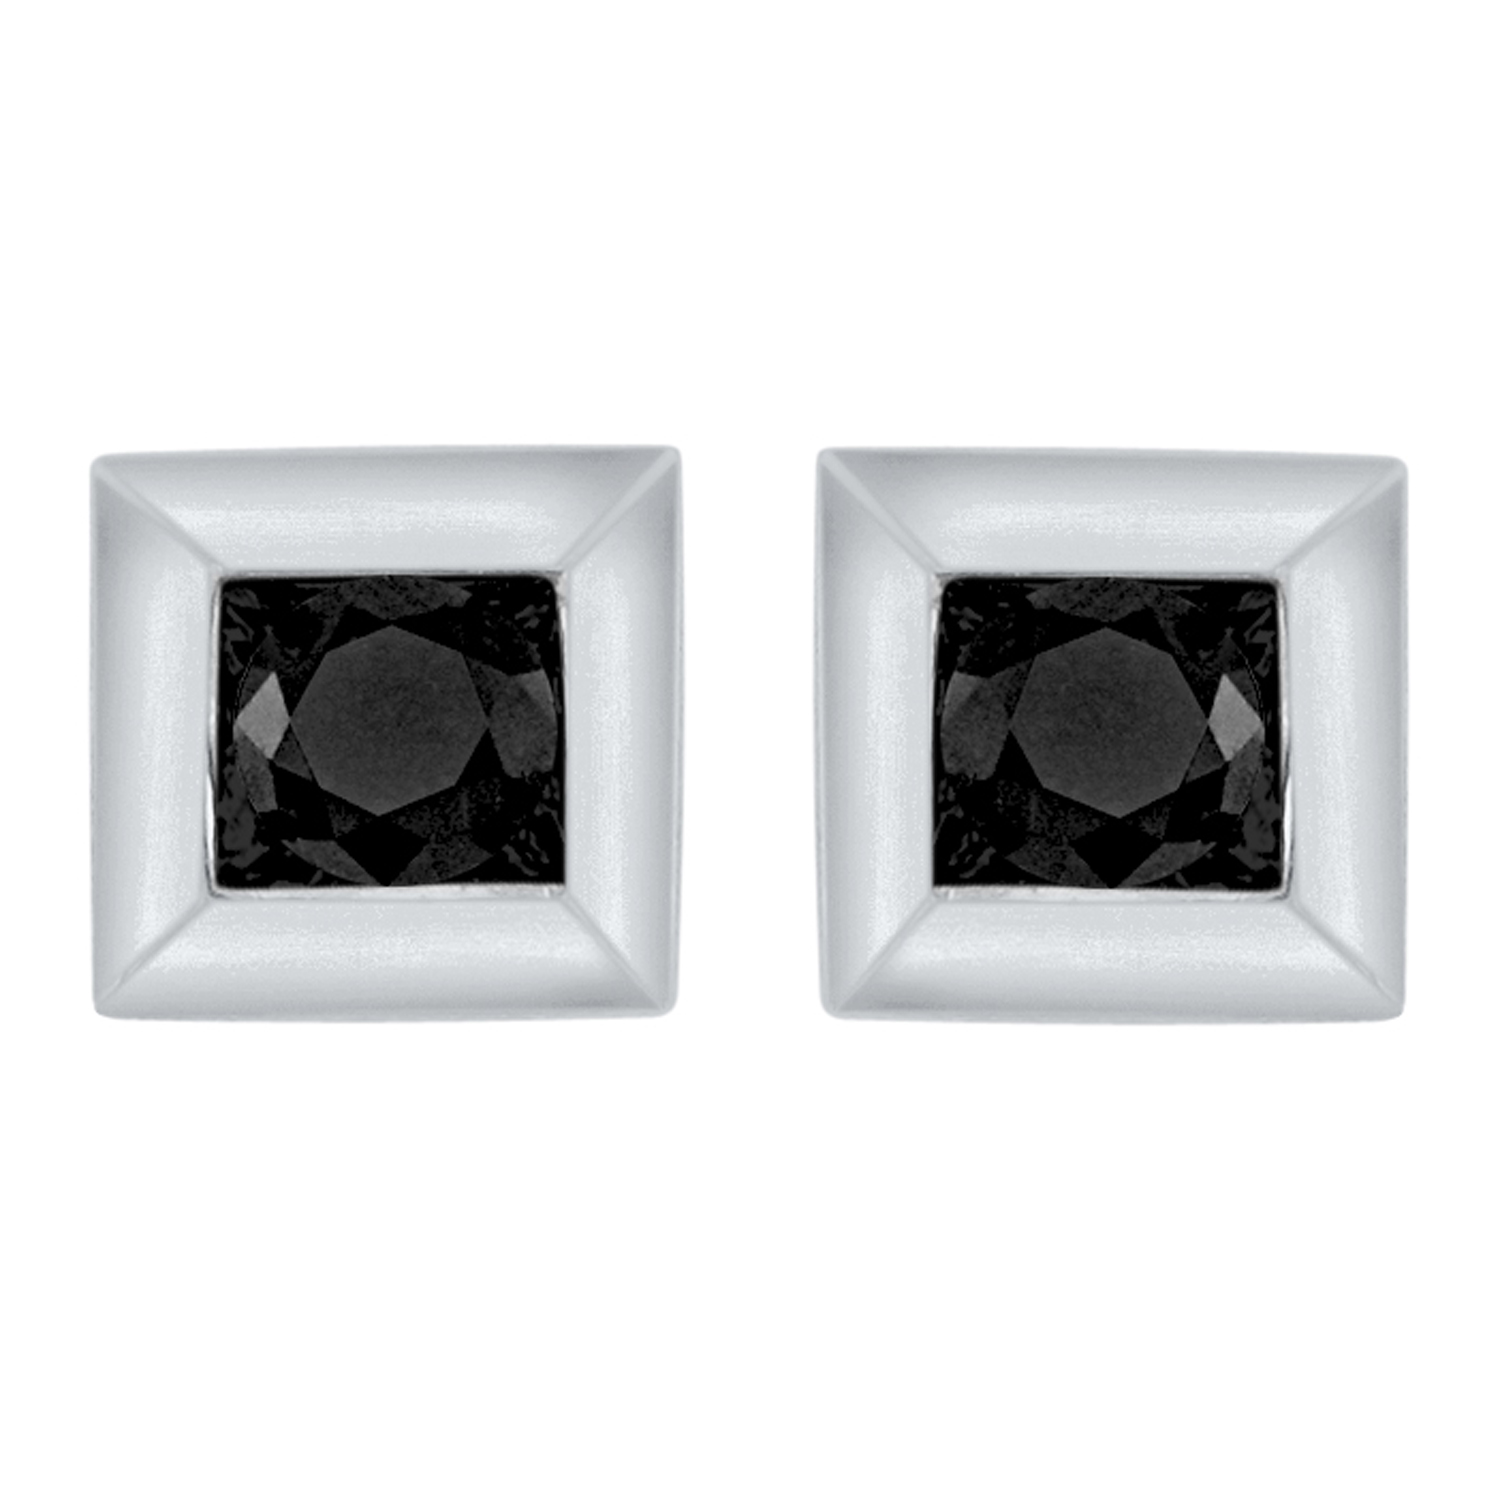 Certified 0.10 cttw Black Princess Cut Diamond Earrings in 10k White Gold